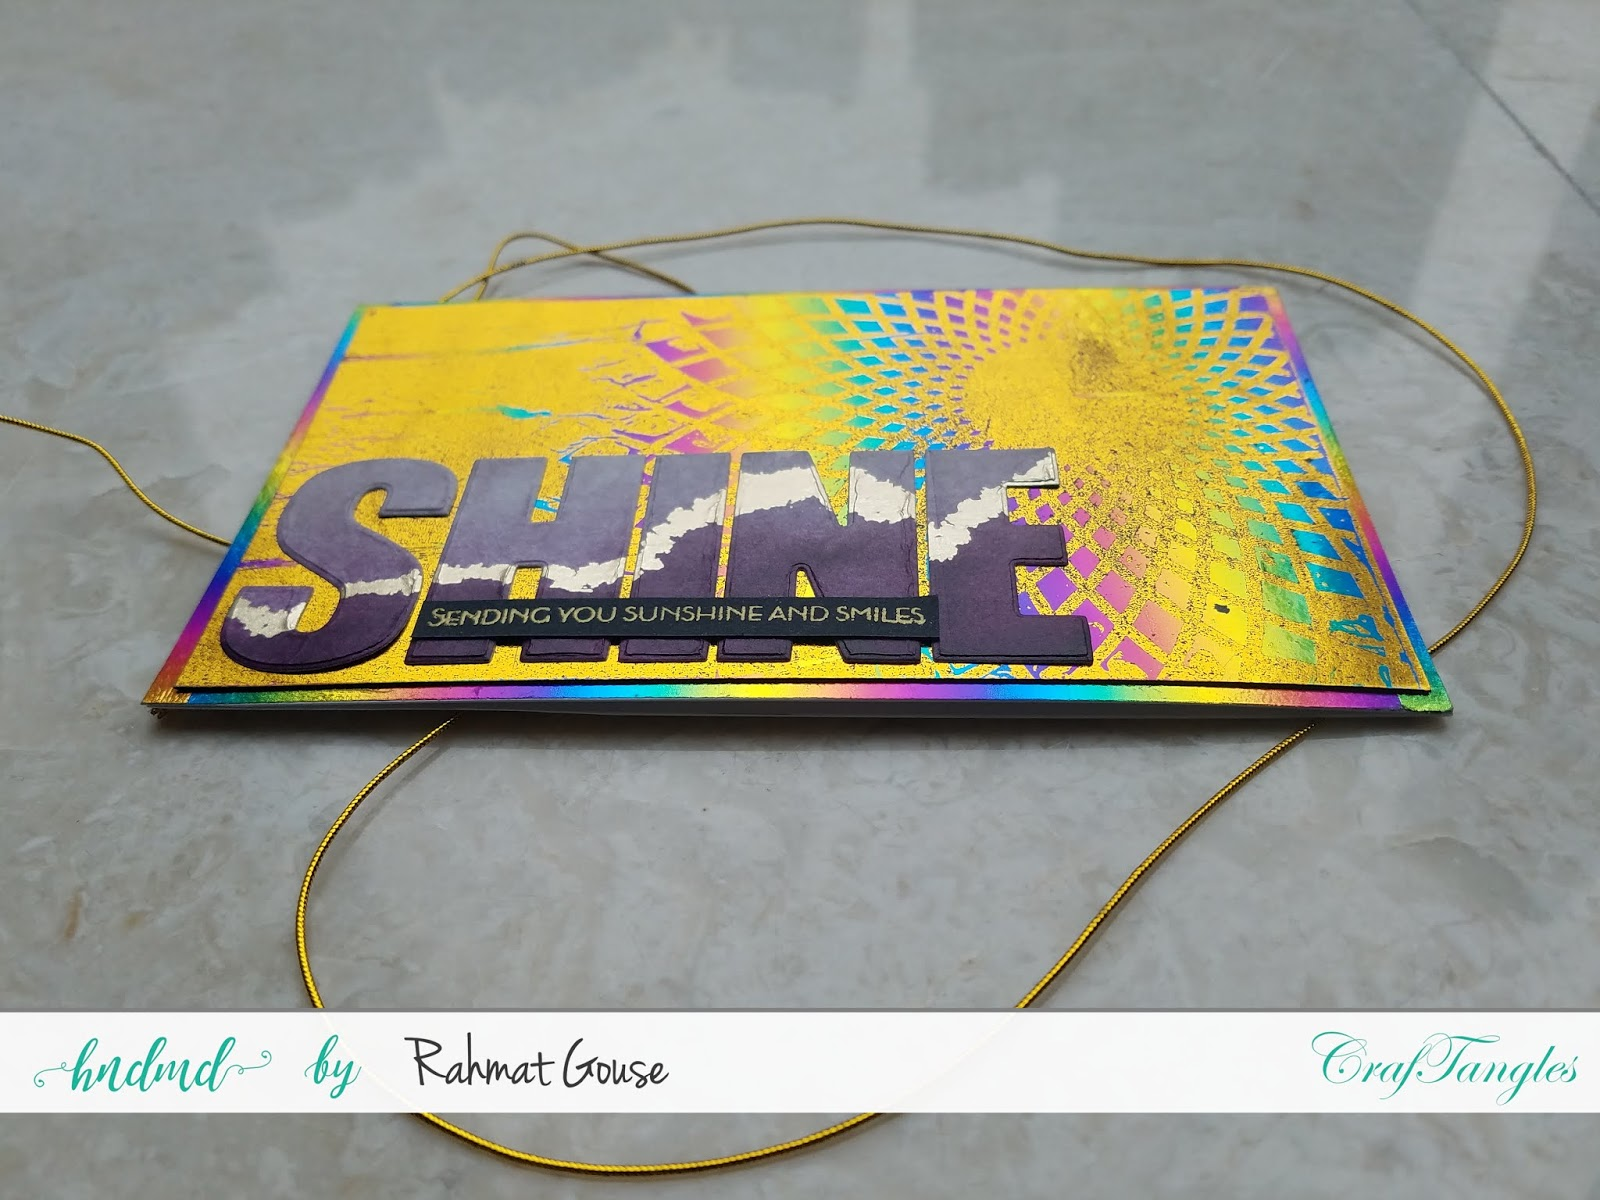 Double foiling using the negatives of stencils and foils - Rahmat 3